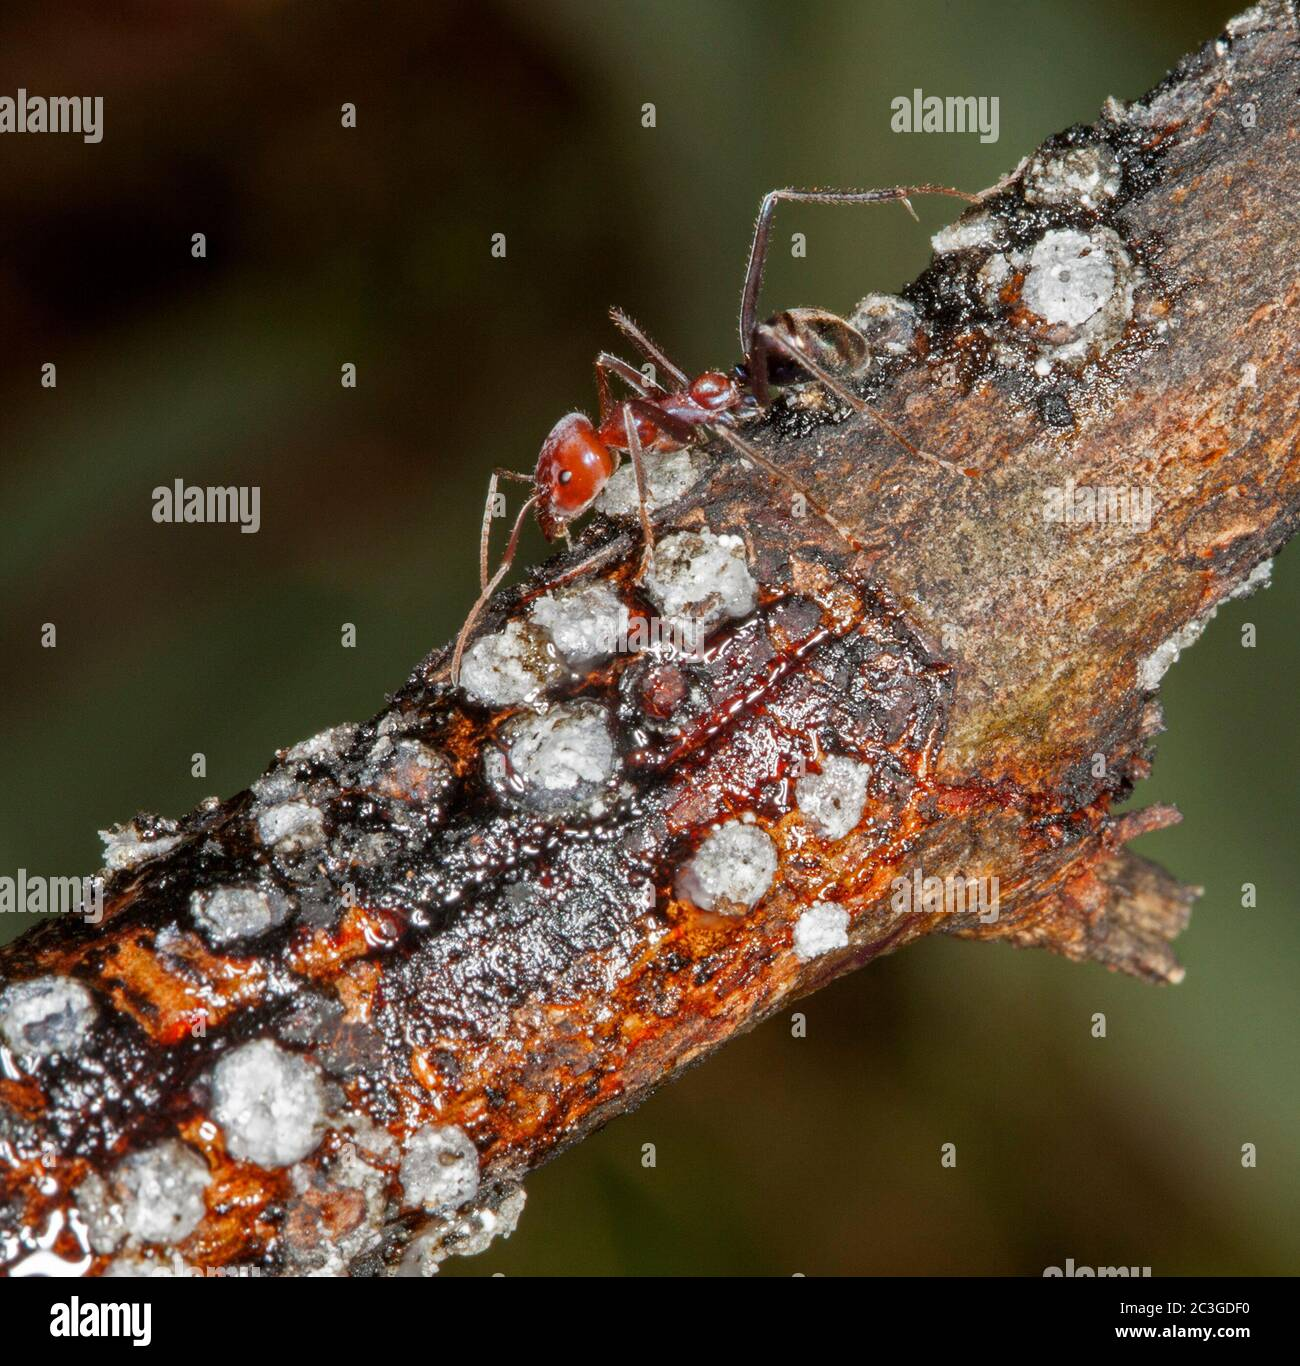 Large red and black ants feeding on scale insects on branch of shrub against dark green background Stock Photo